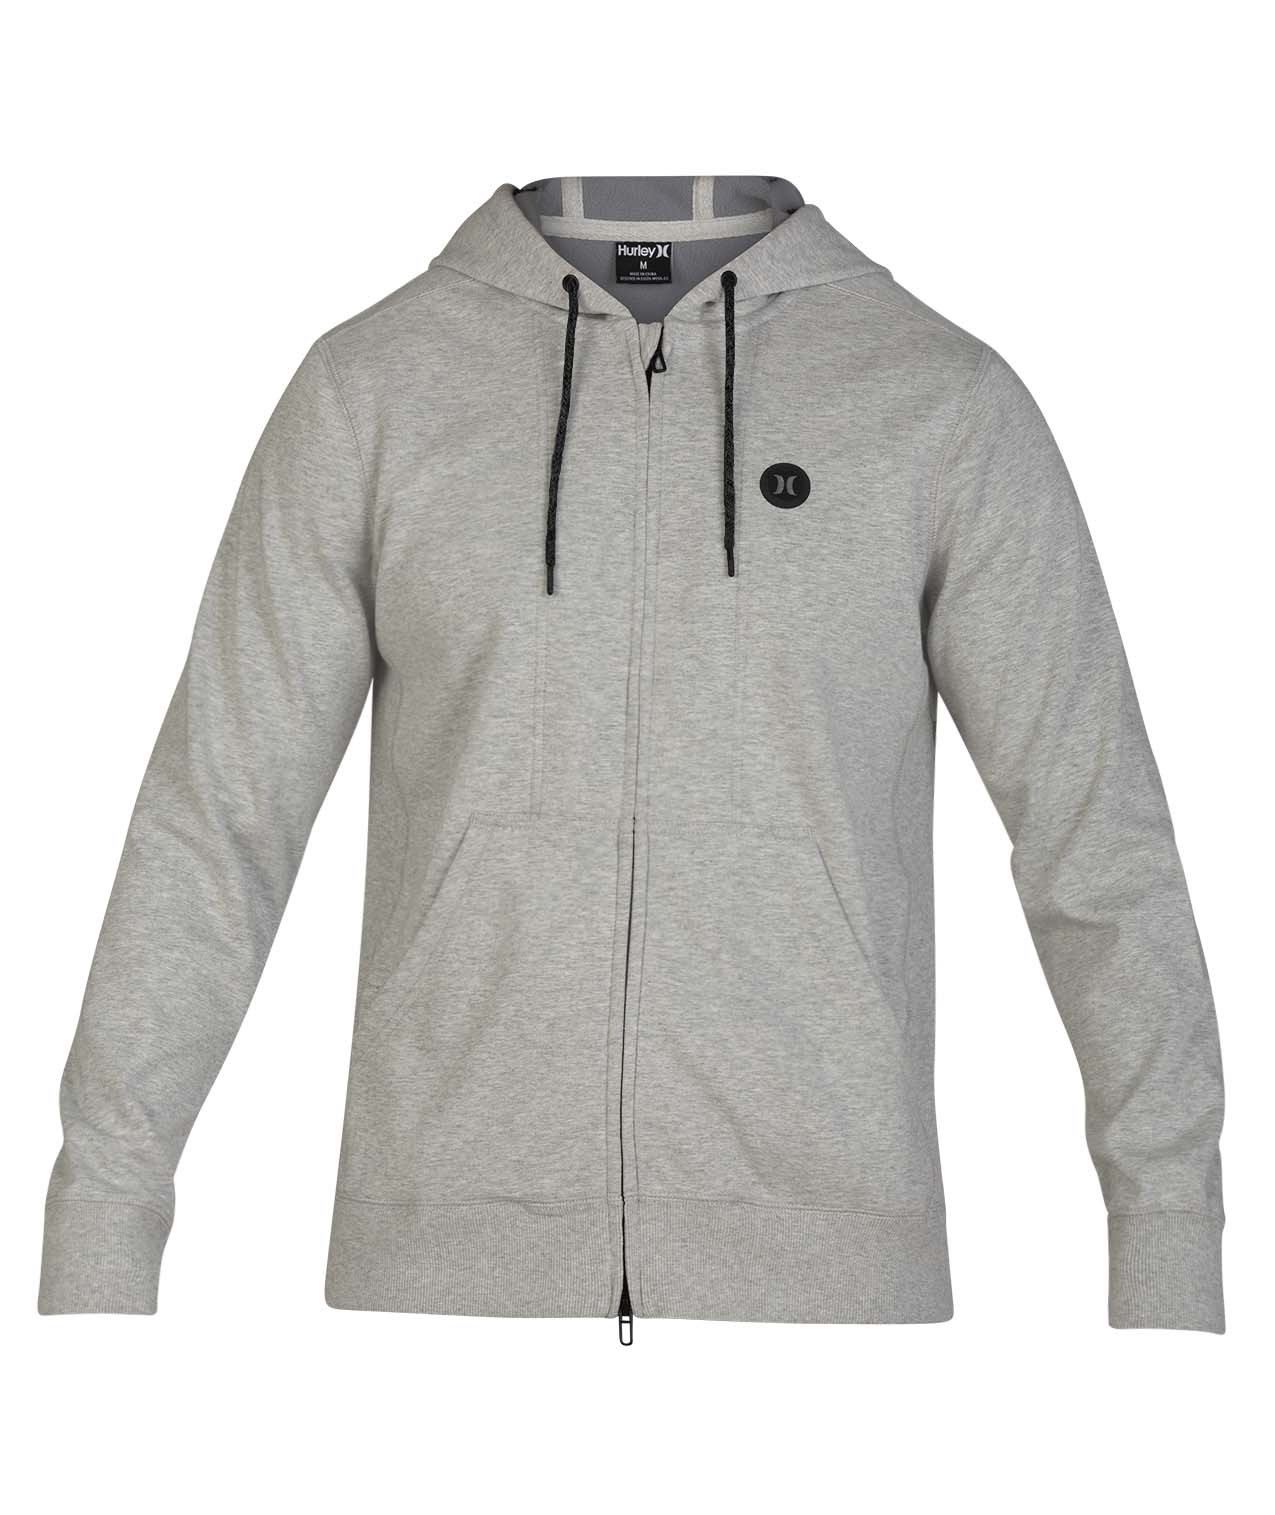 HURLEY THERMA PROTECT FULL ZIP